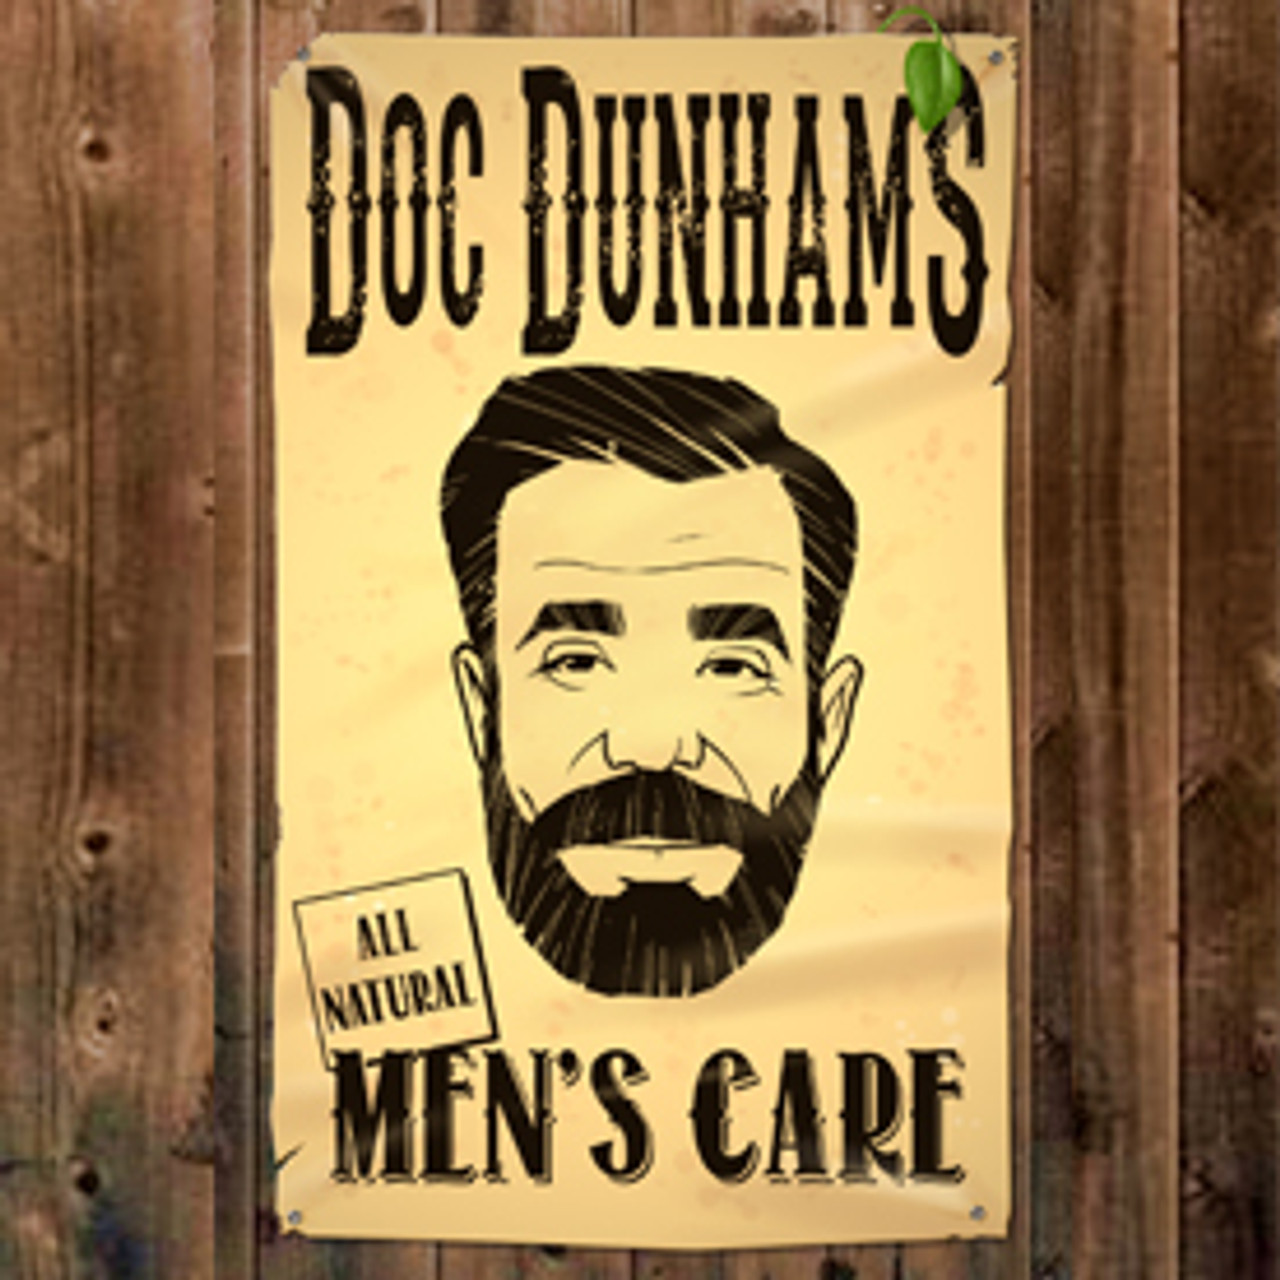 Doc Dunham's Mens Care Lotions